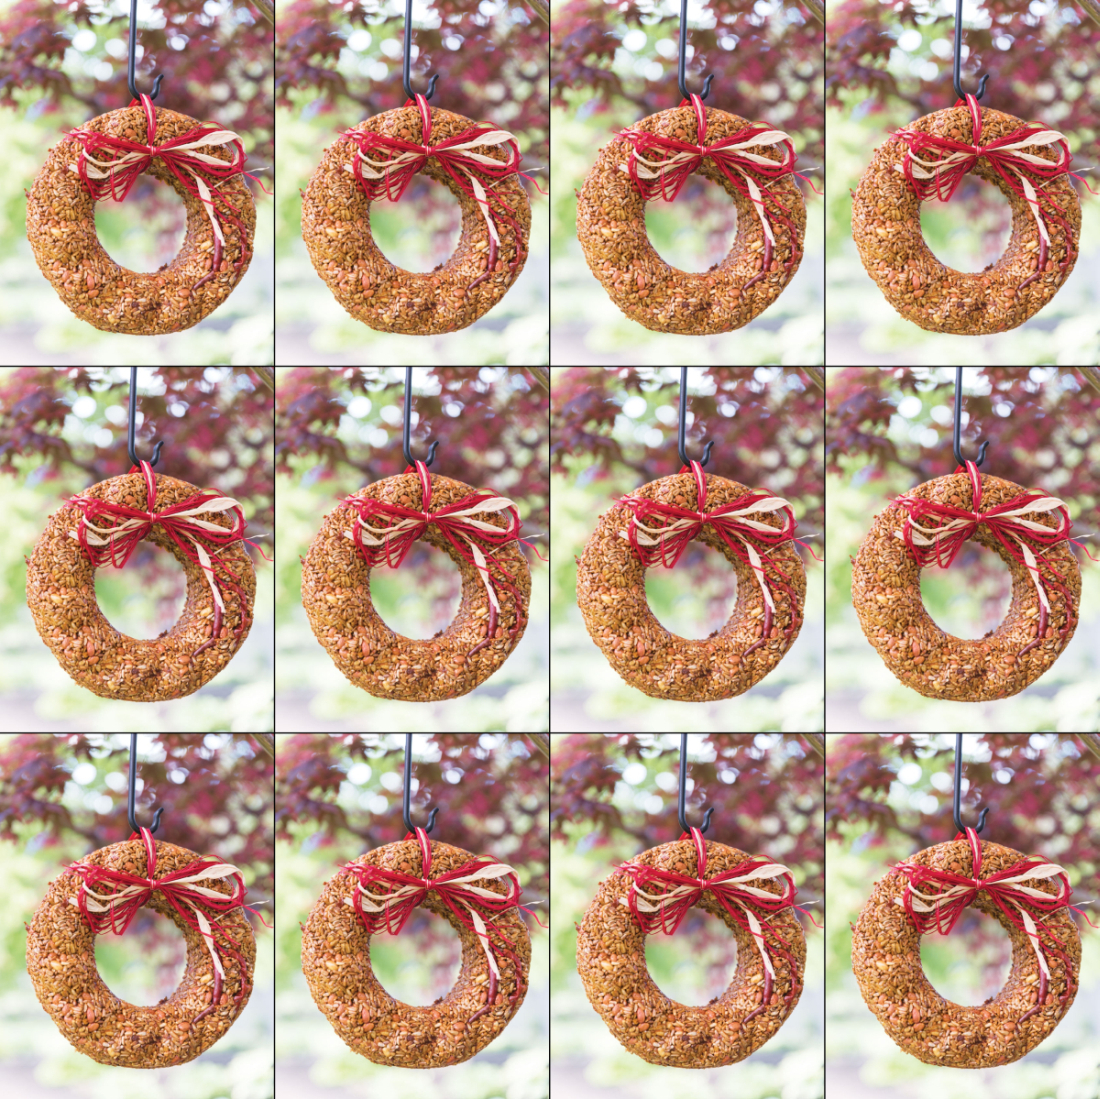 Flaming Hot Edible Bird Seed Wreath 12/Pack